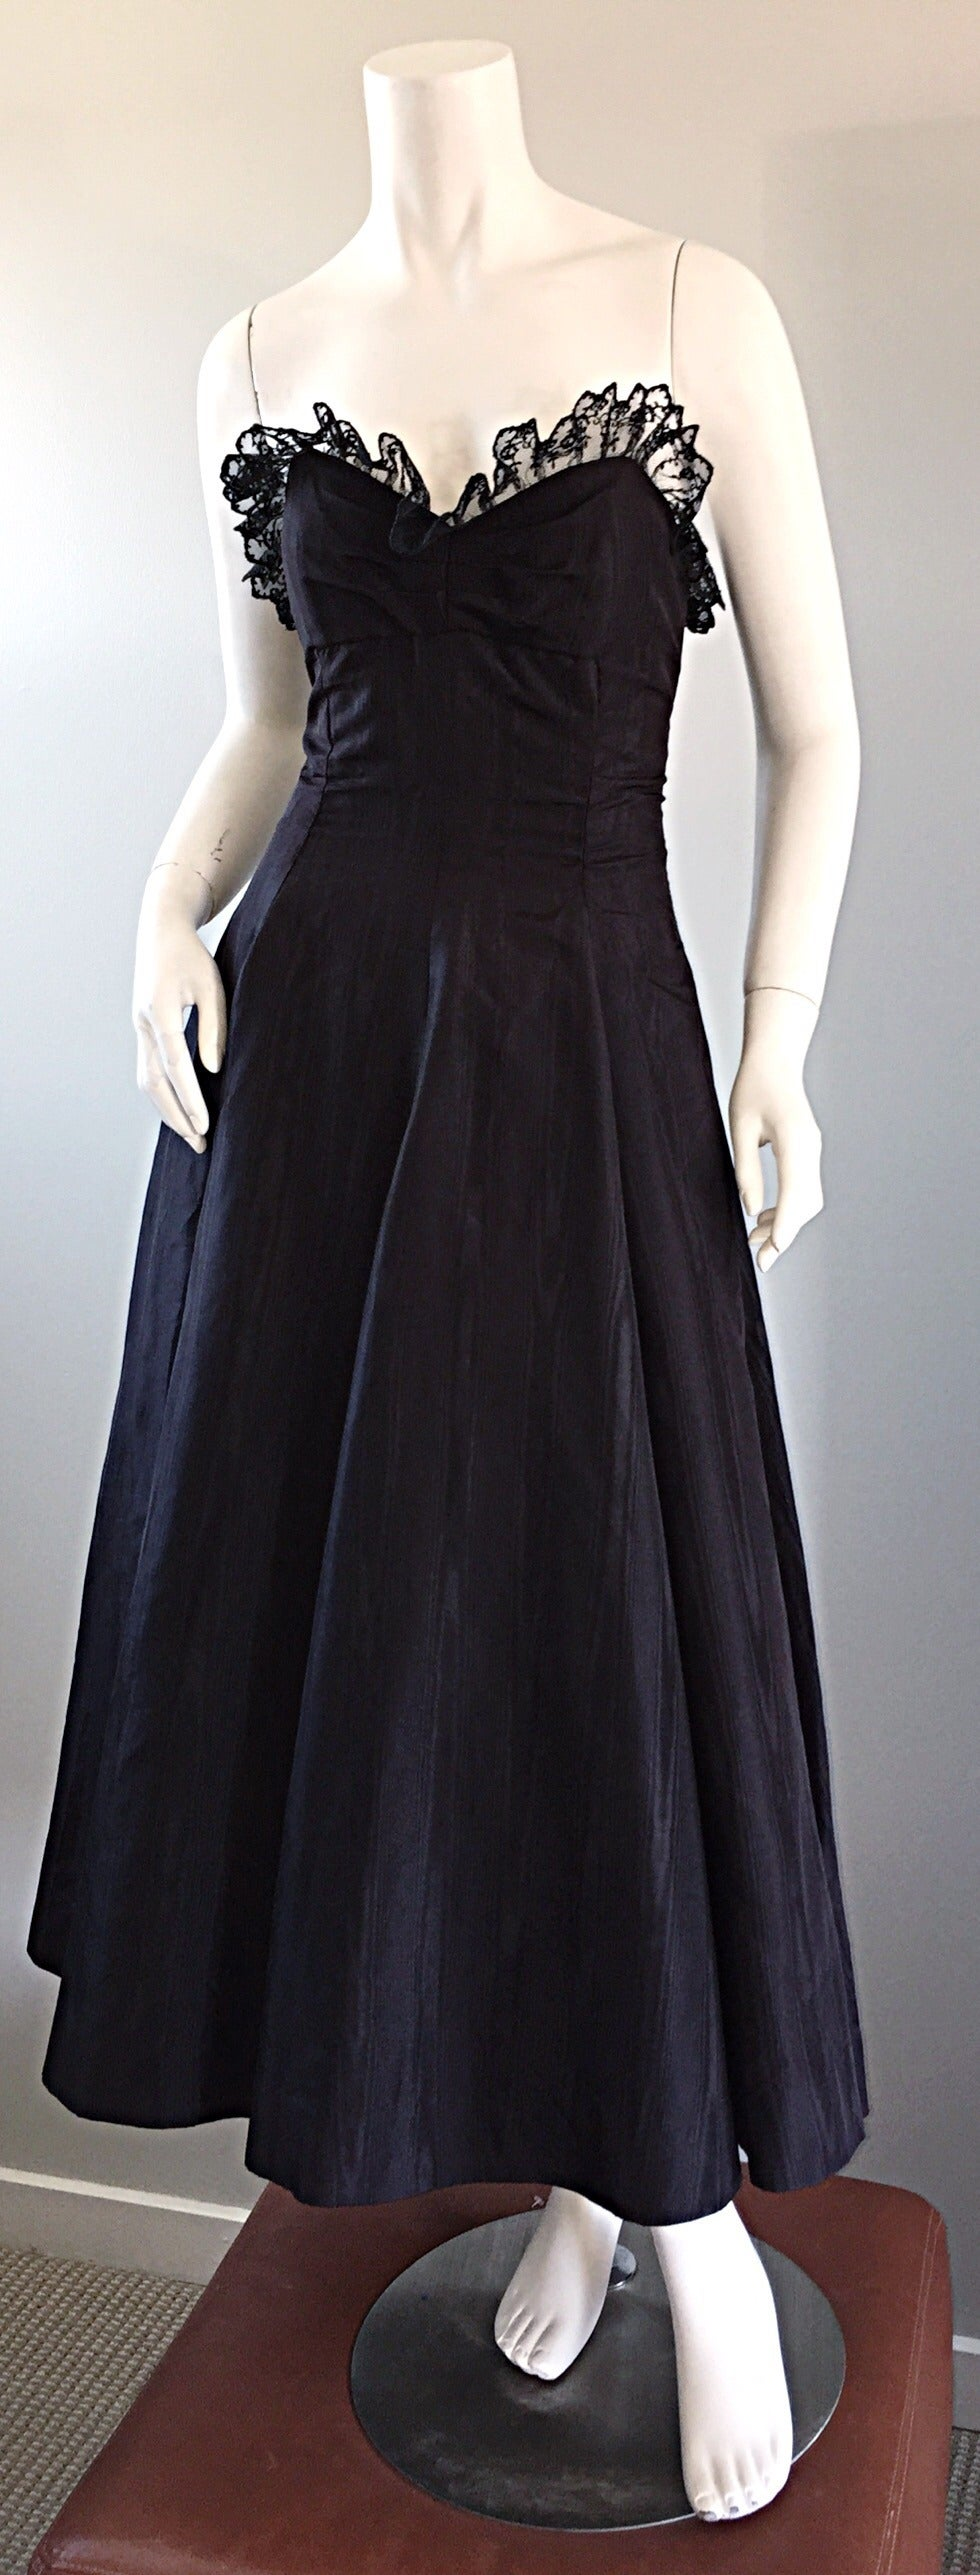 """1950s 50s Black Silk Taffeta + Lace Strapless """" New Look """" Vintage Dress For Sale 4"""